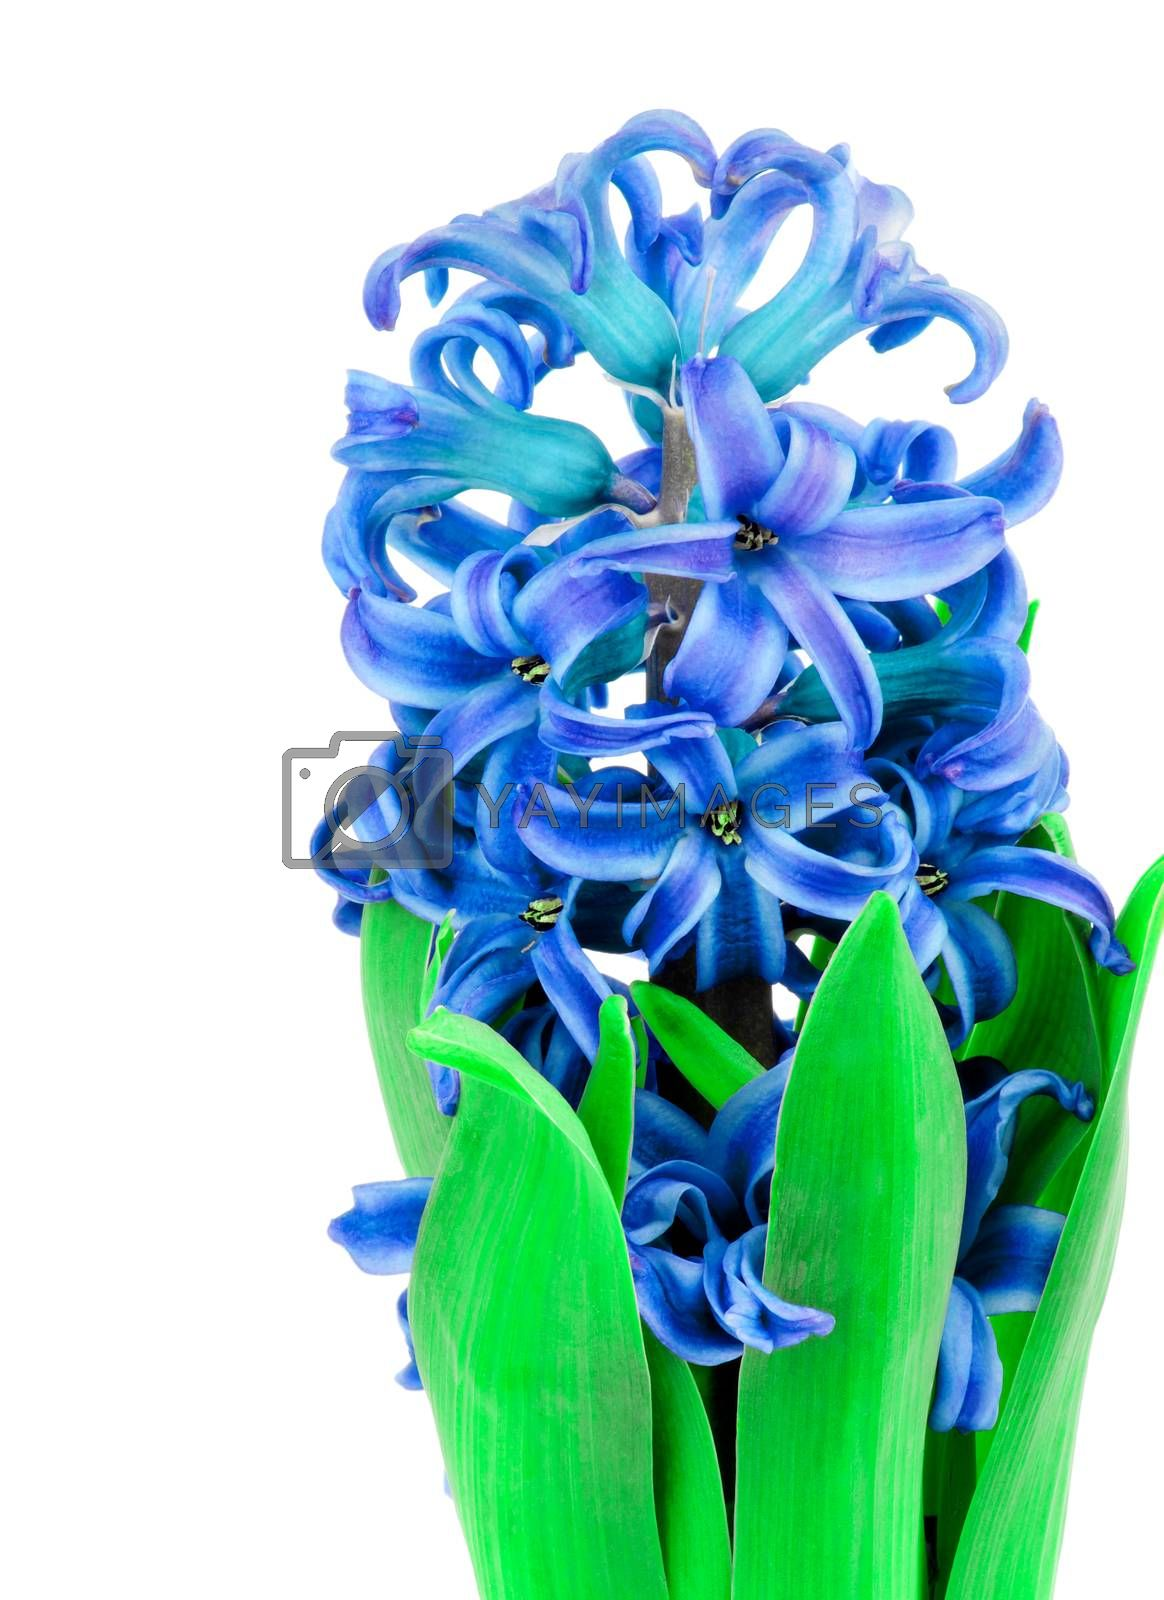 Beauty Blue Hyacinth with Leafs Isolated on White background